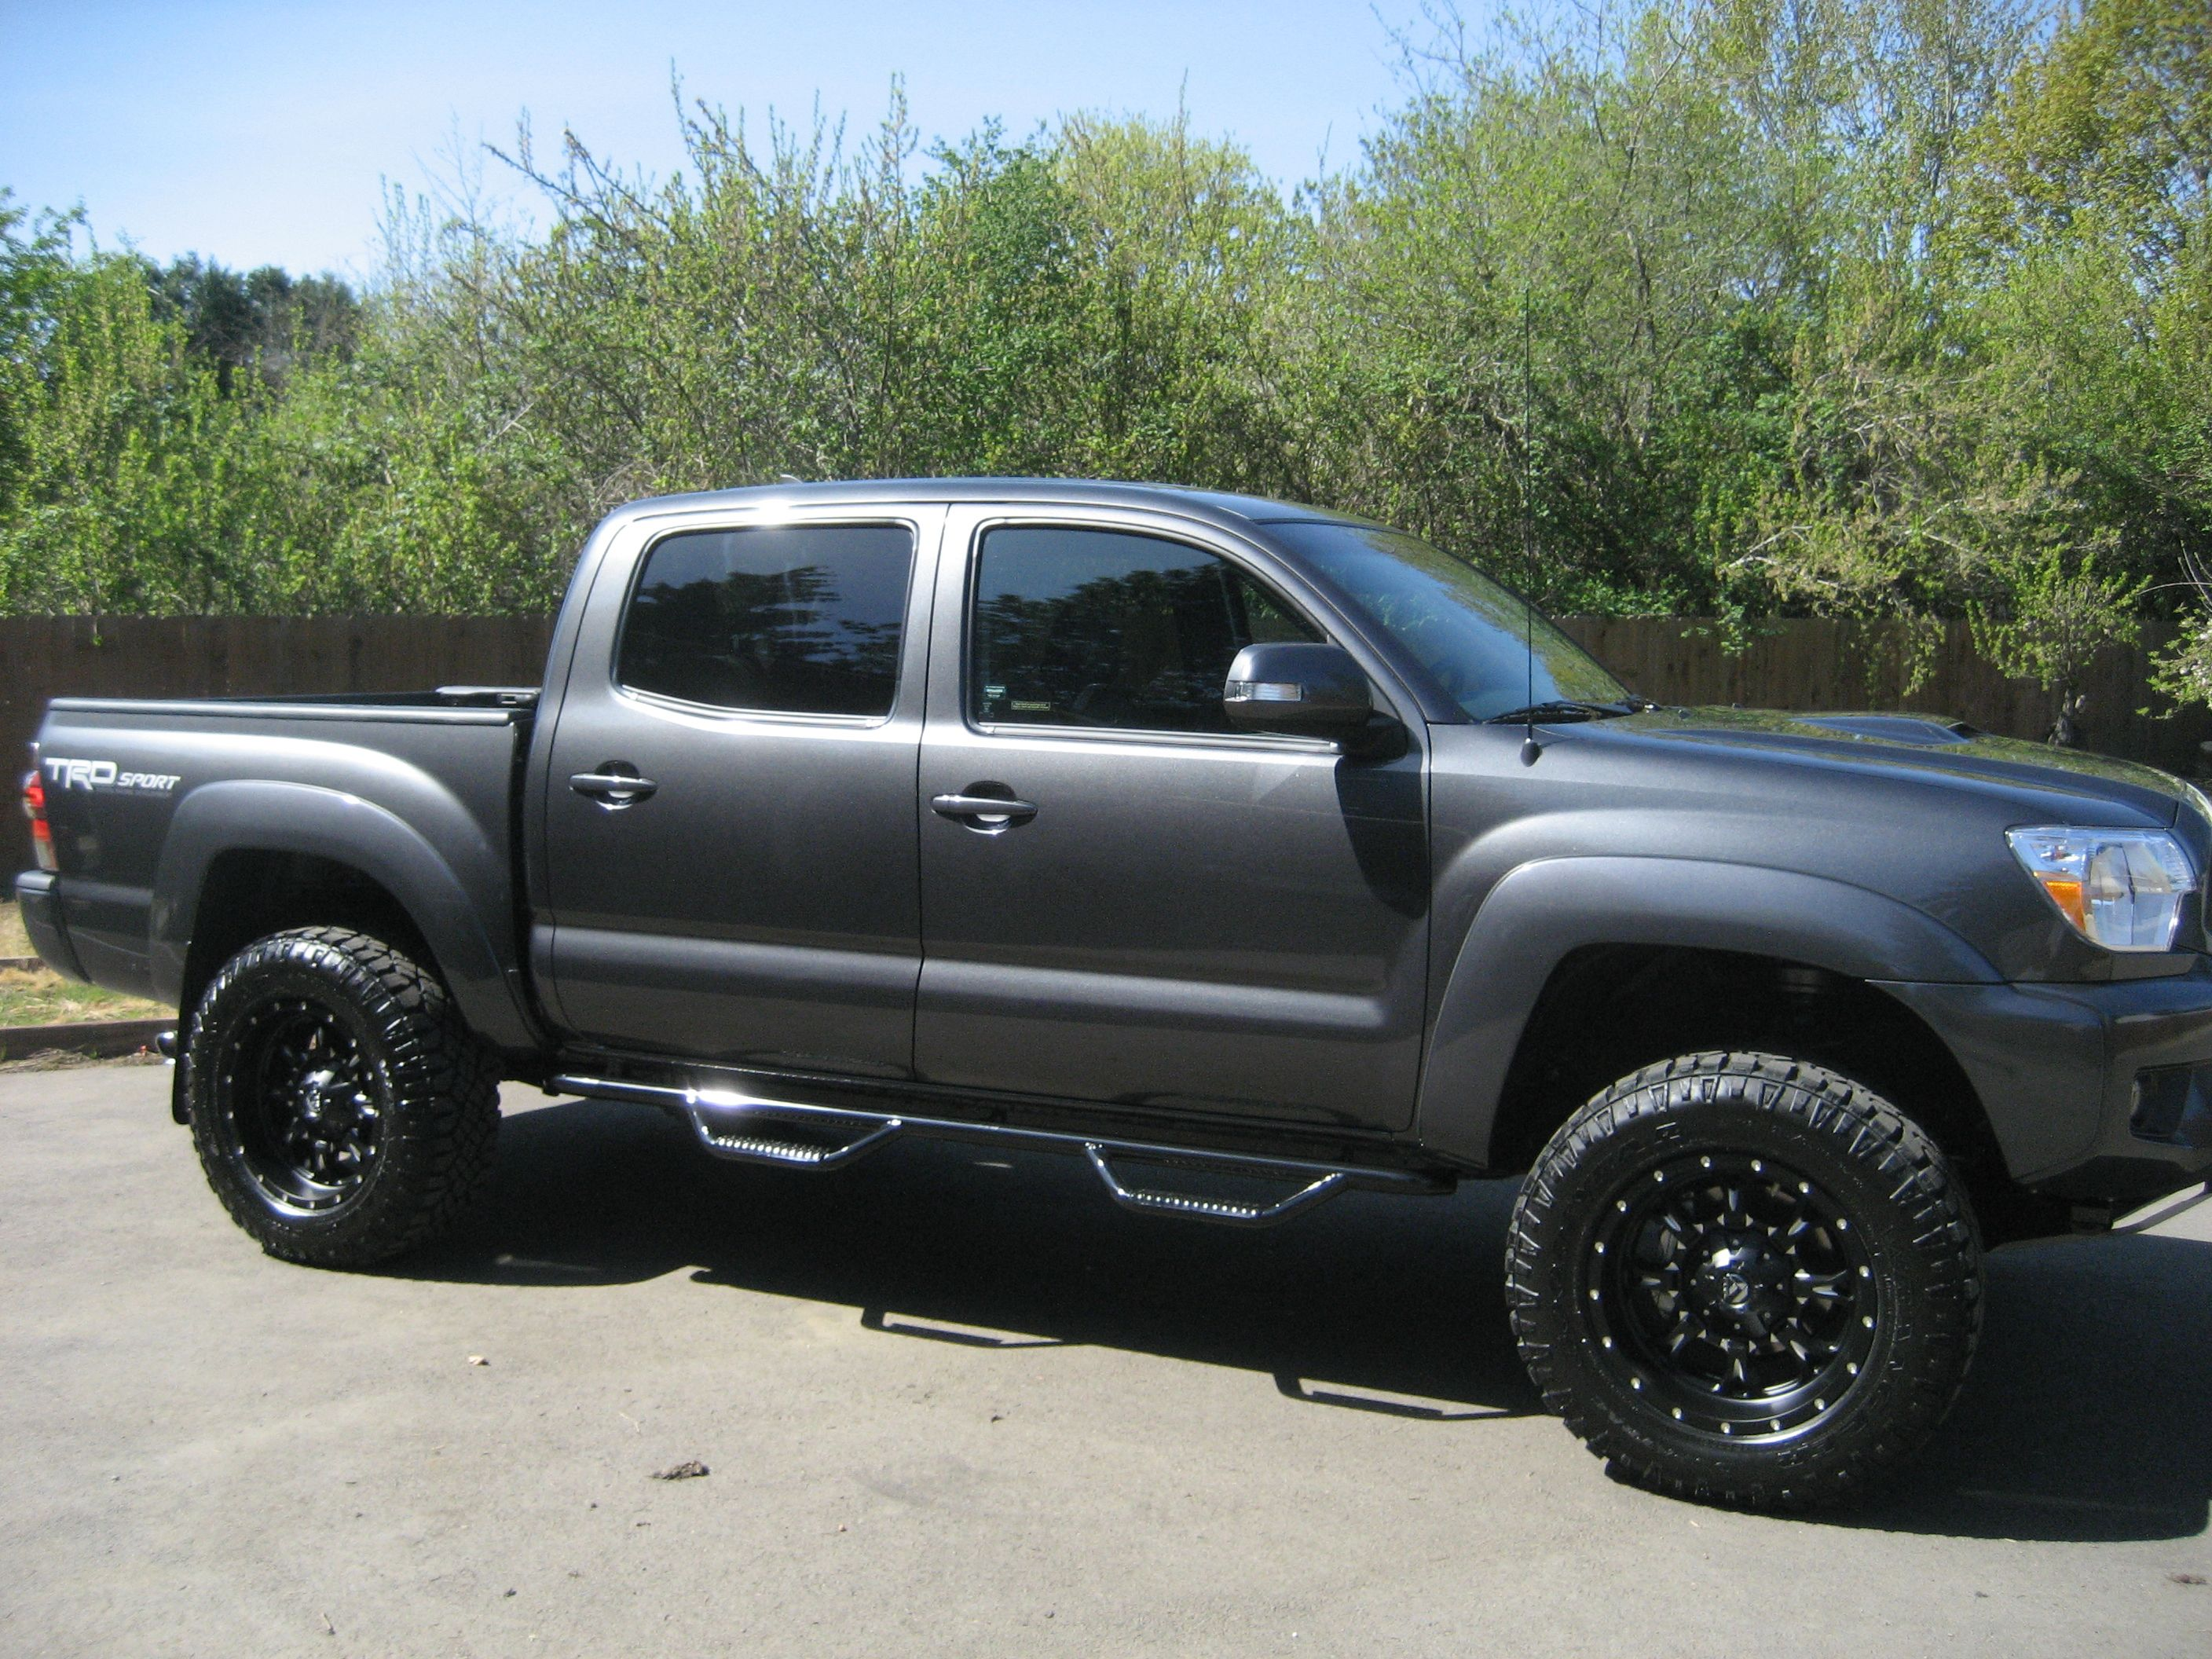 2000 toyota tacoma 4x4 ebay autos post. Black Bedroom Furniture Sets. Home Design Ideas